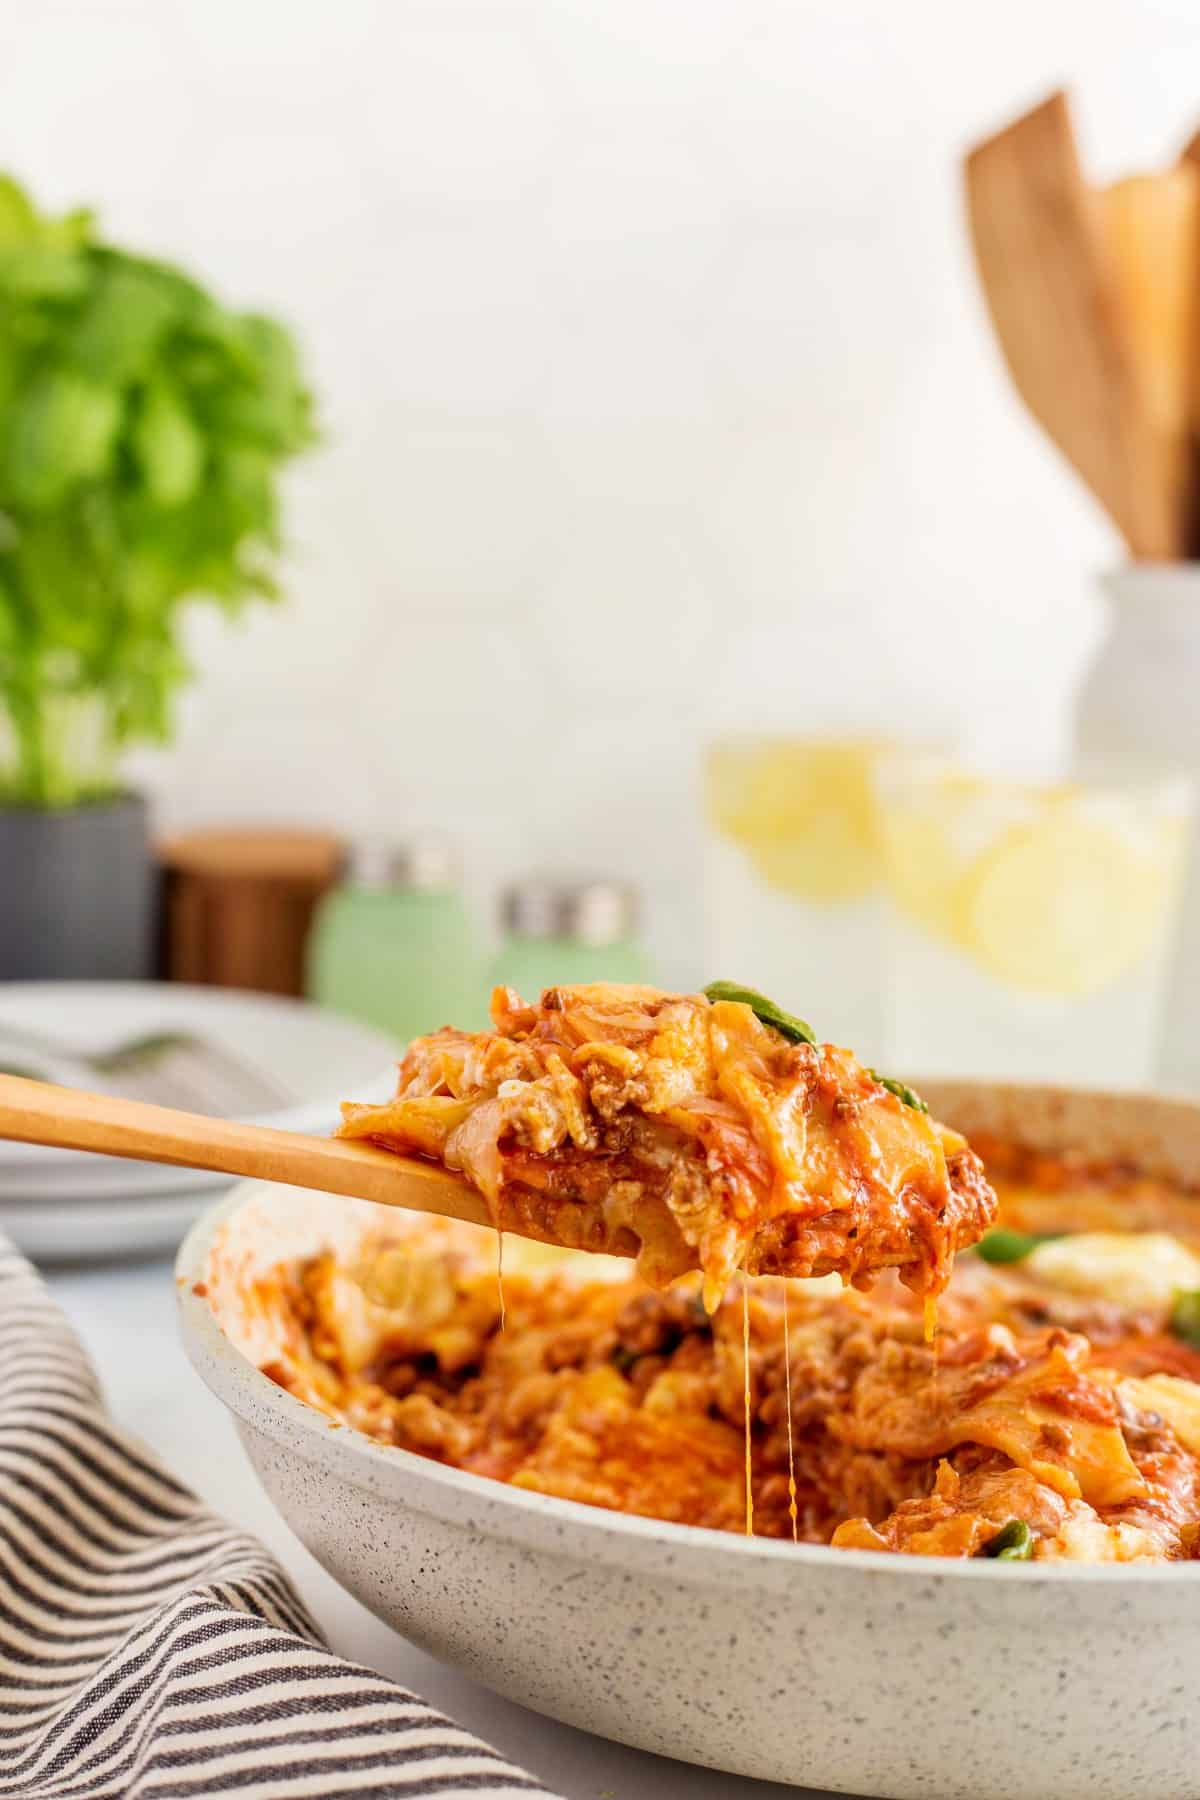 Scooping out skillet lasagna with a wooden sppon.